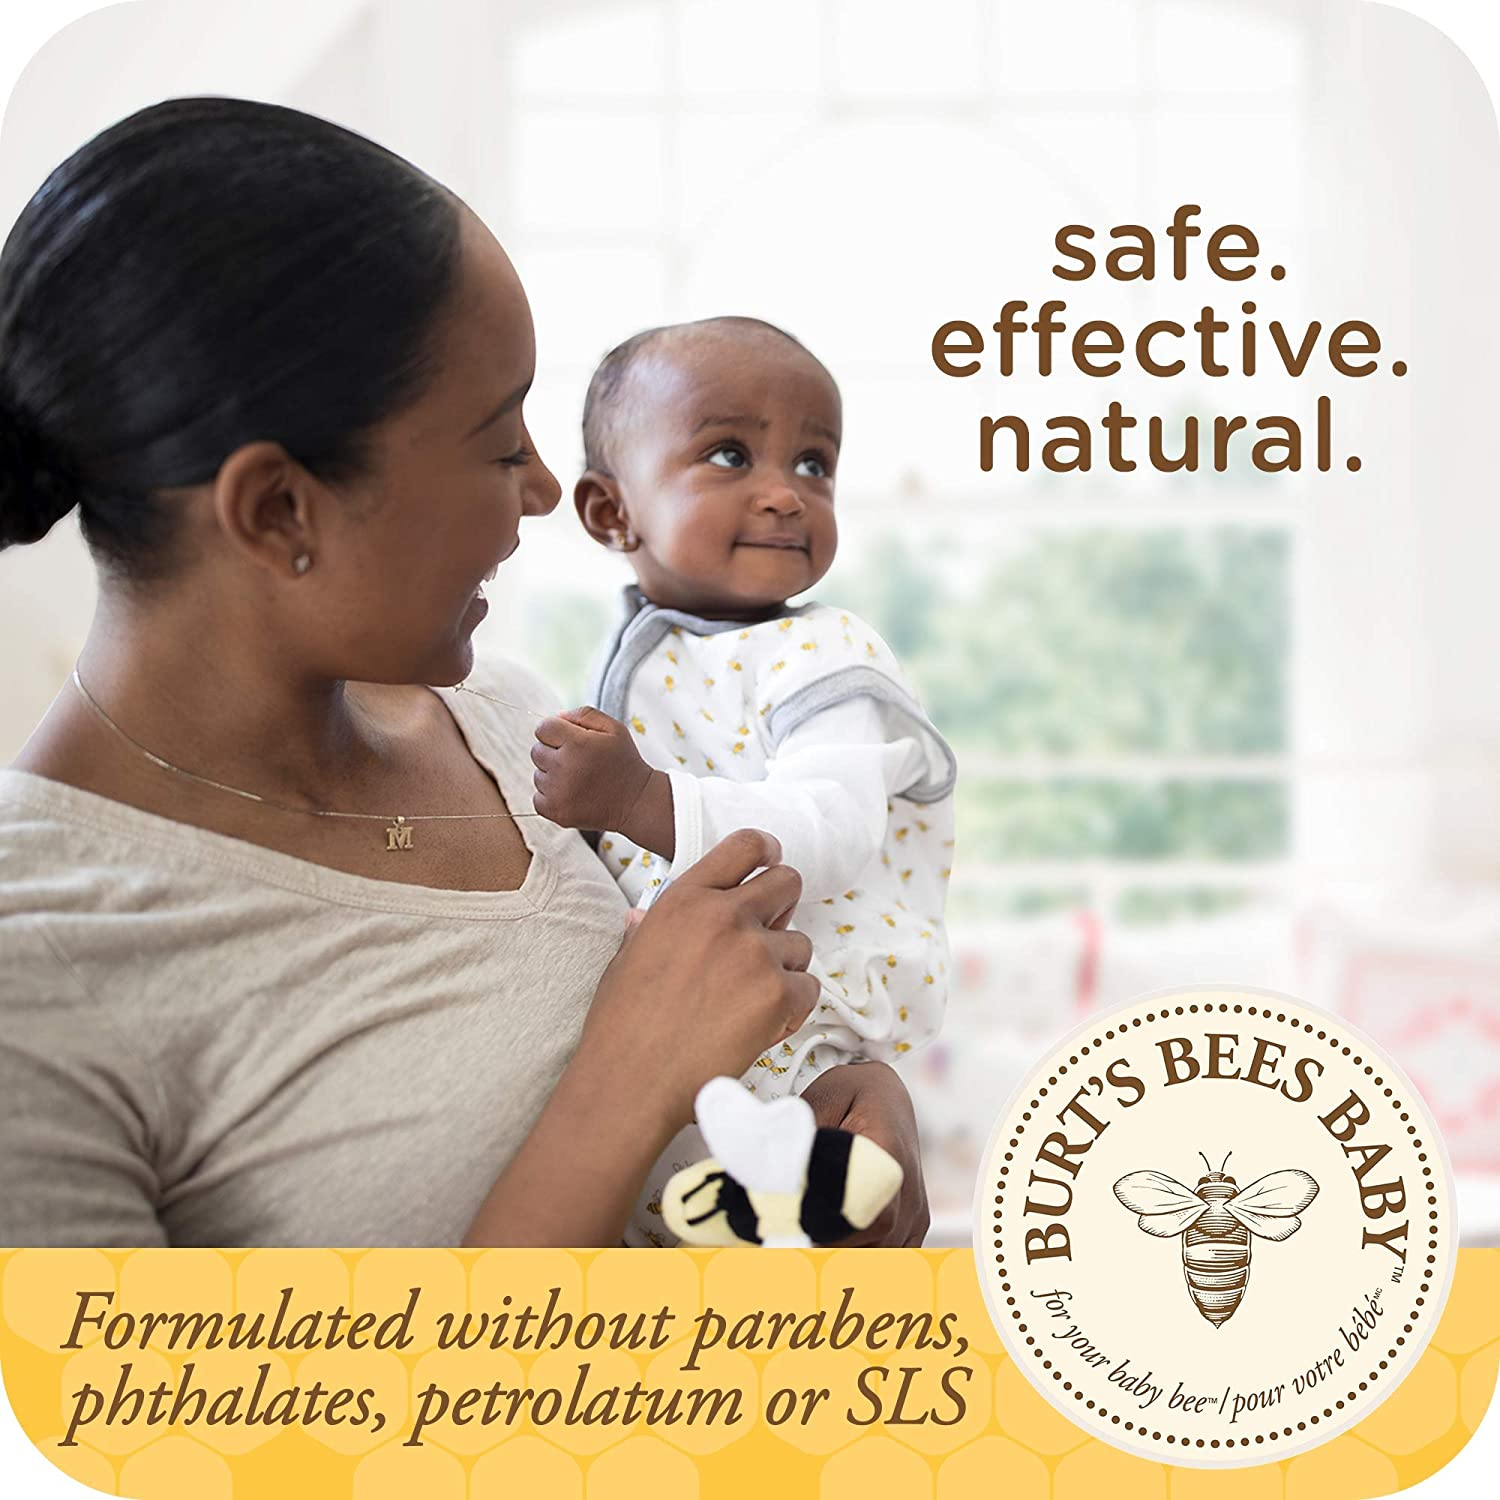 Burt's Bees Baby Nourishing Lotion, Original Scent Baby Lotion - 12 Ounce Tube : Baby